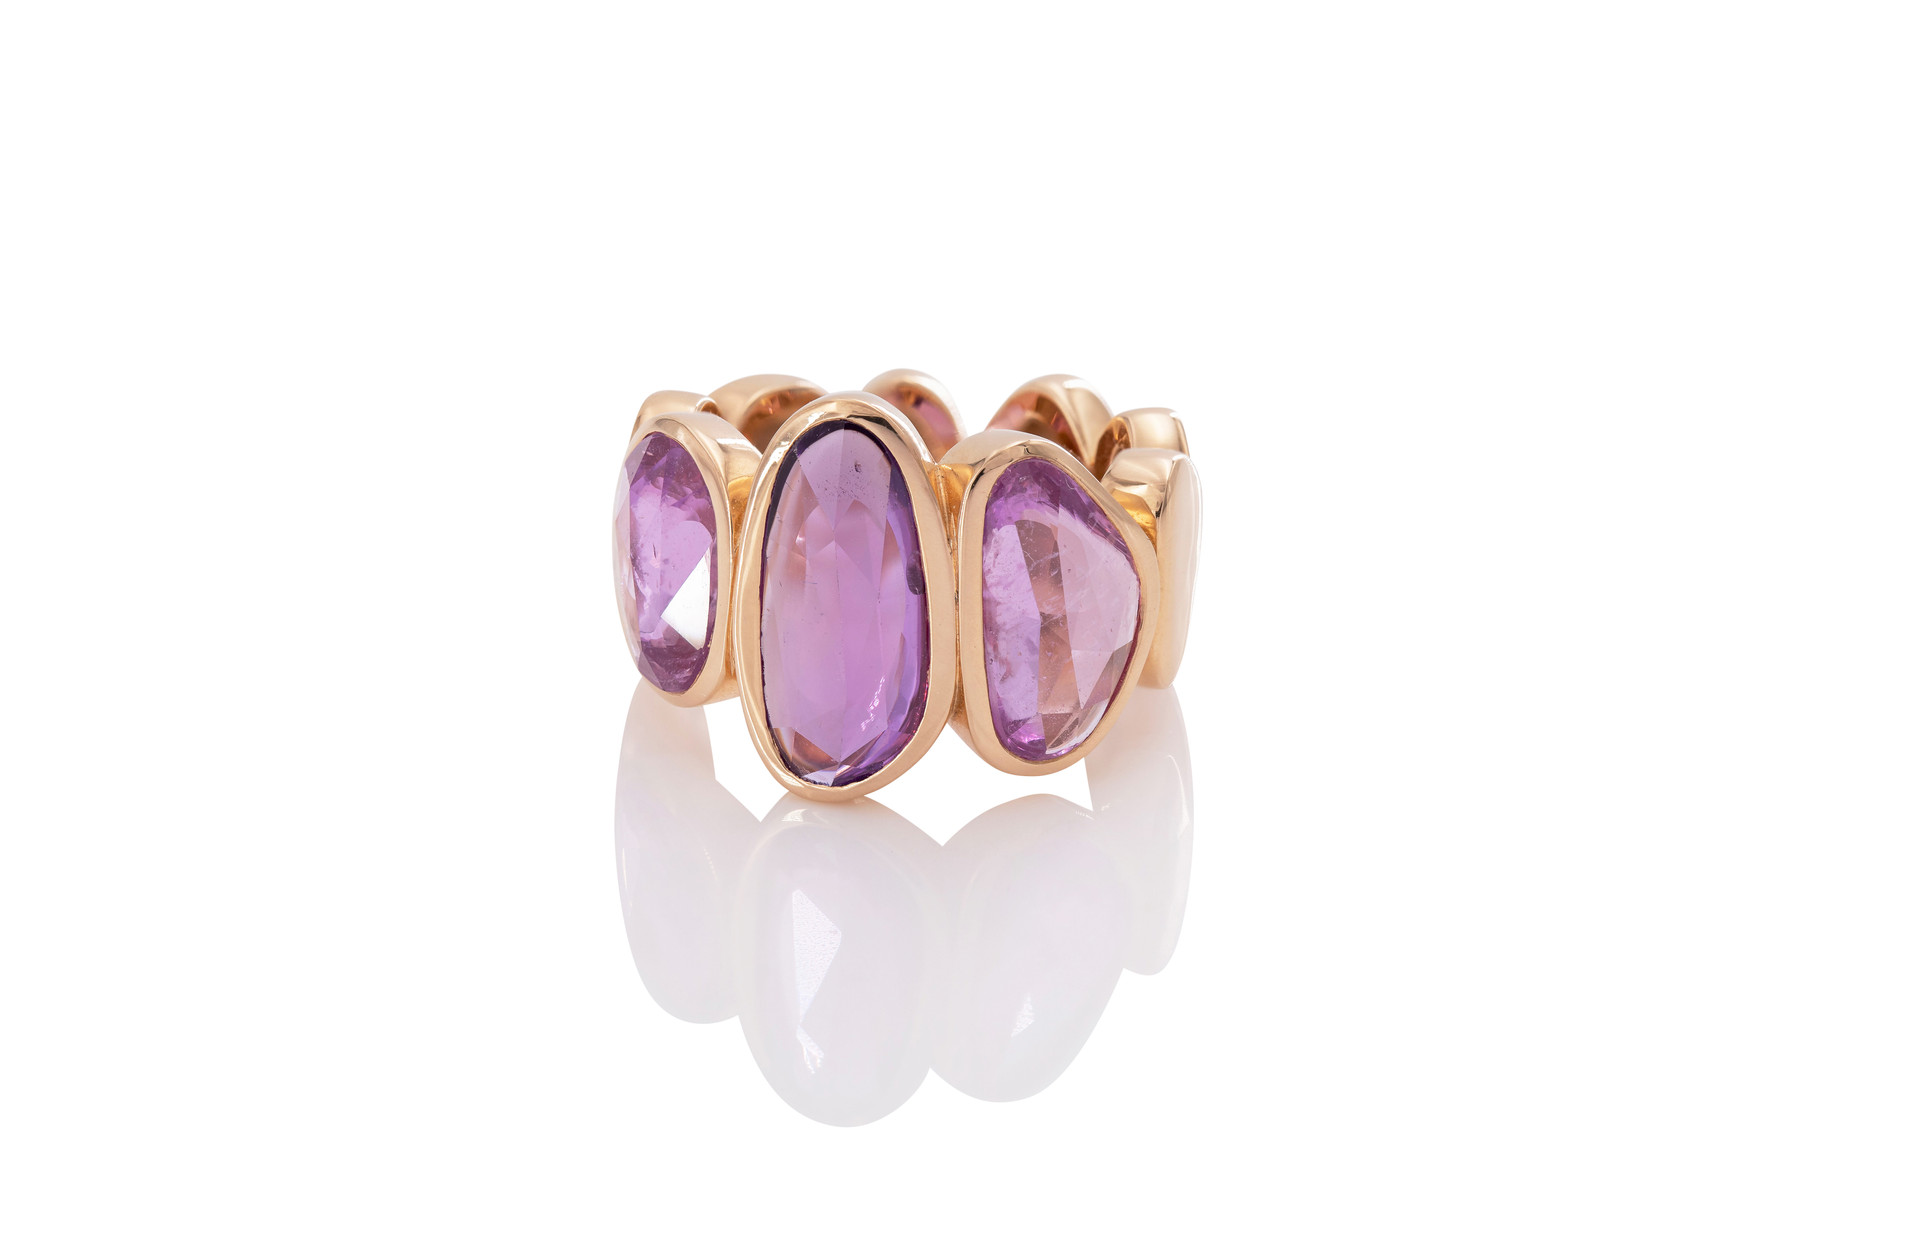 750 ROSÉGOLD SAPHIRRING 3 saphire 8,74ct purple